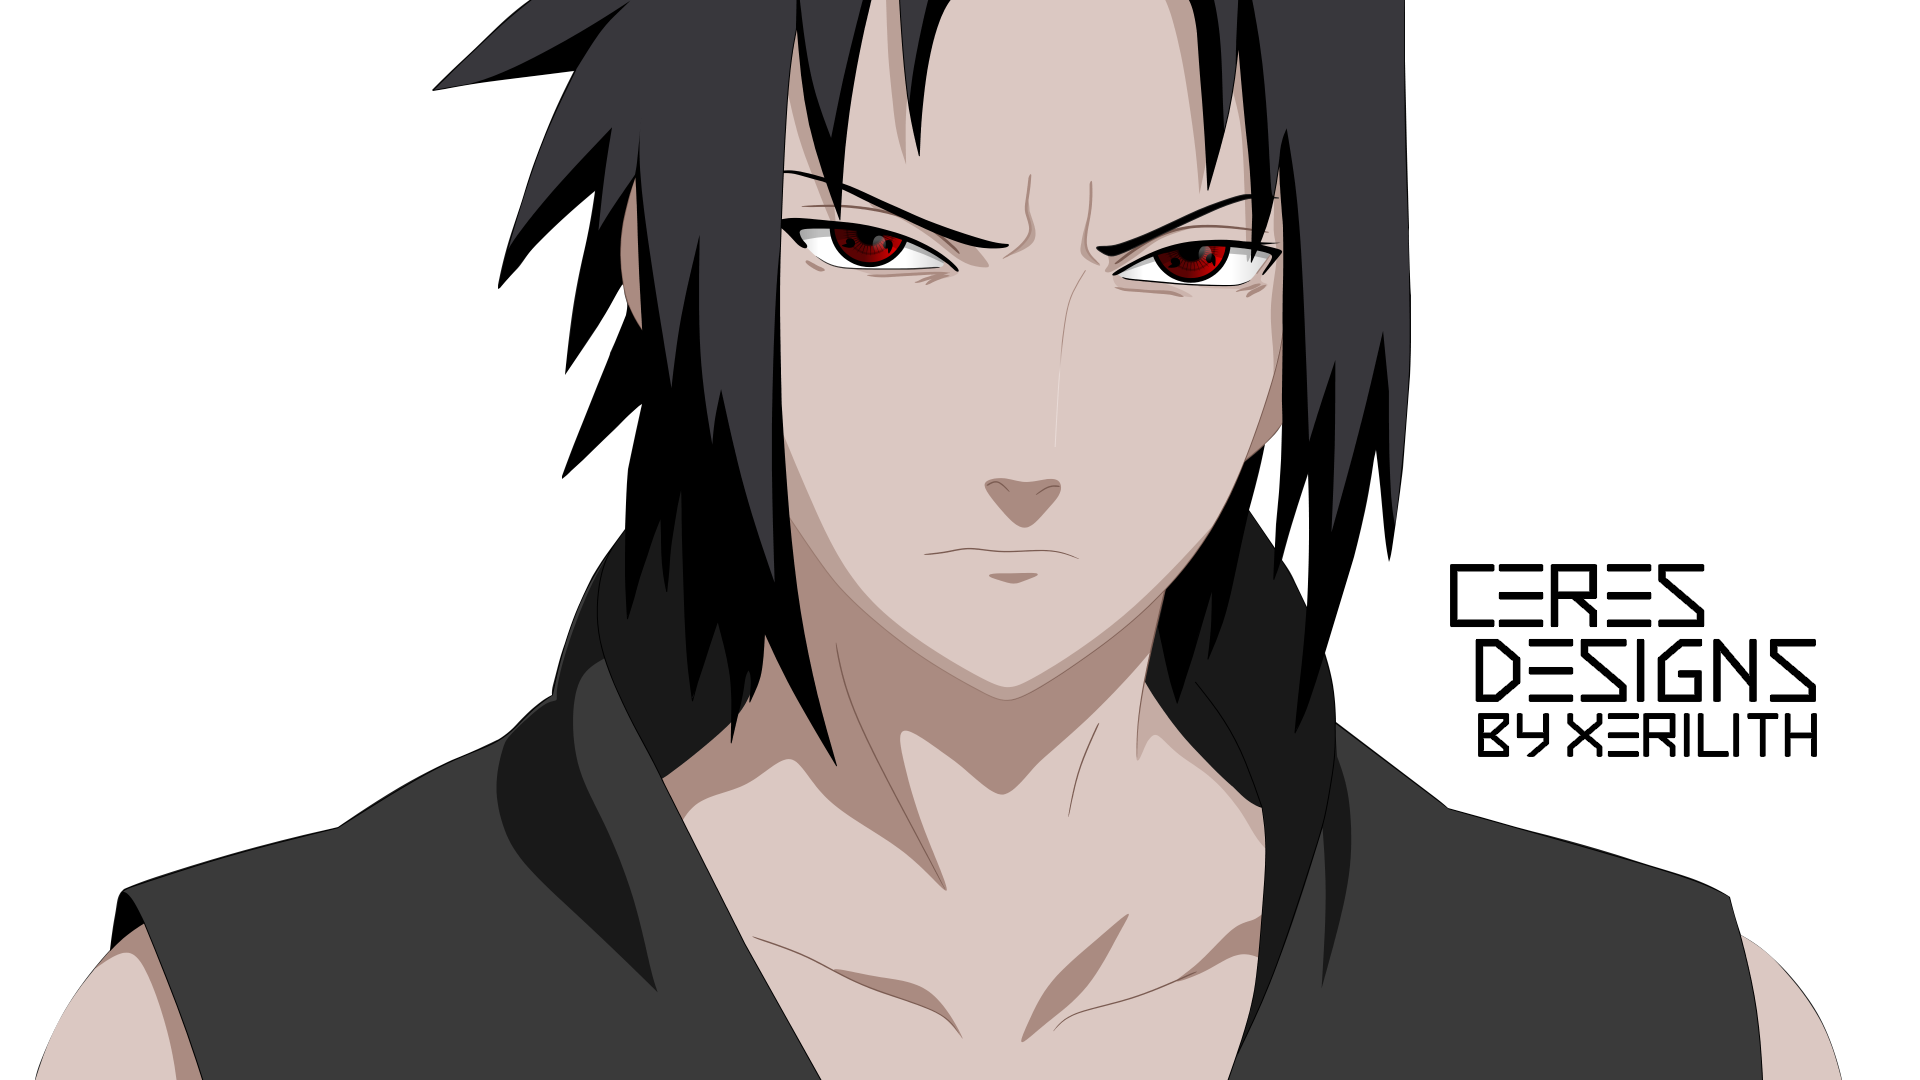 Sasuke Uchiha Render By Zelithix On DeviantArt